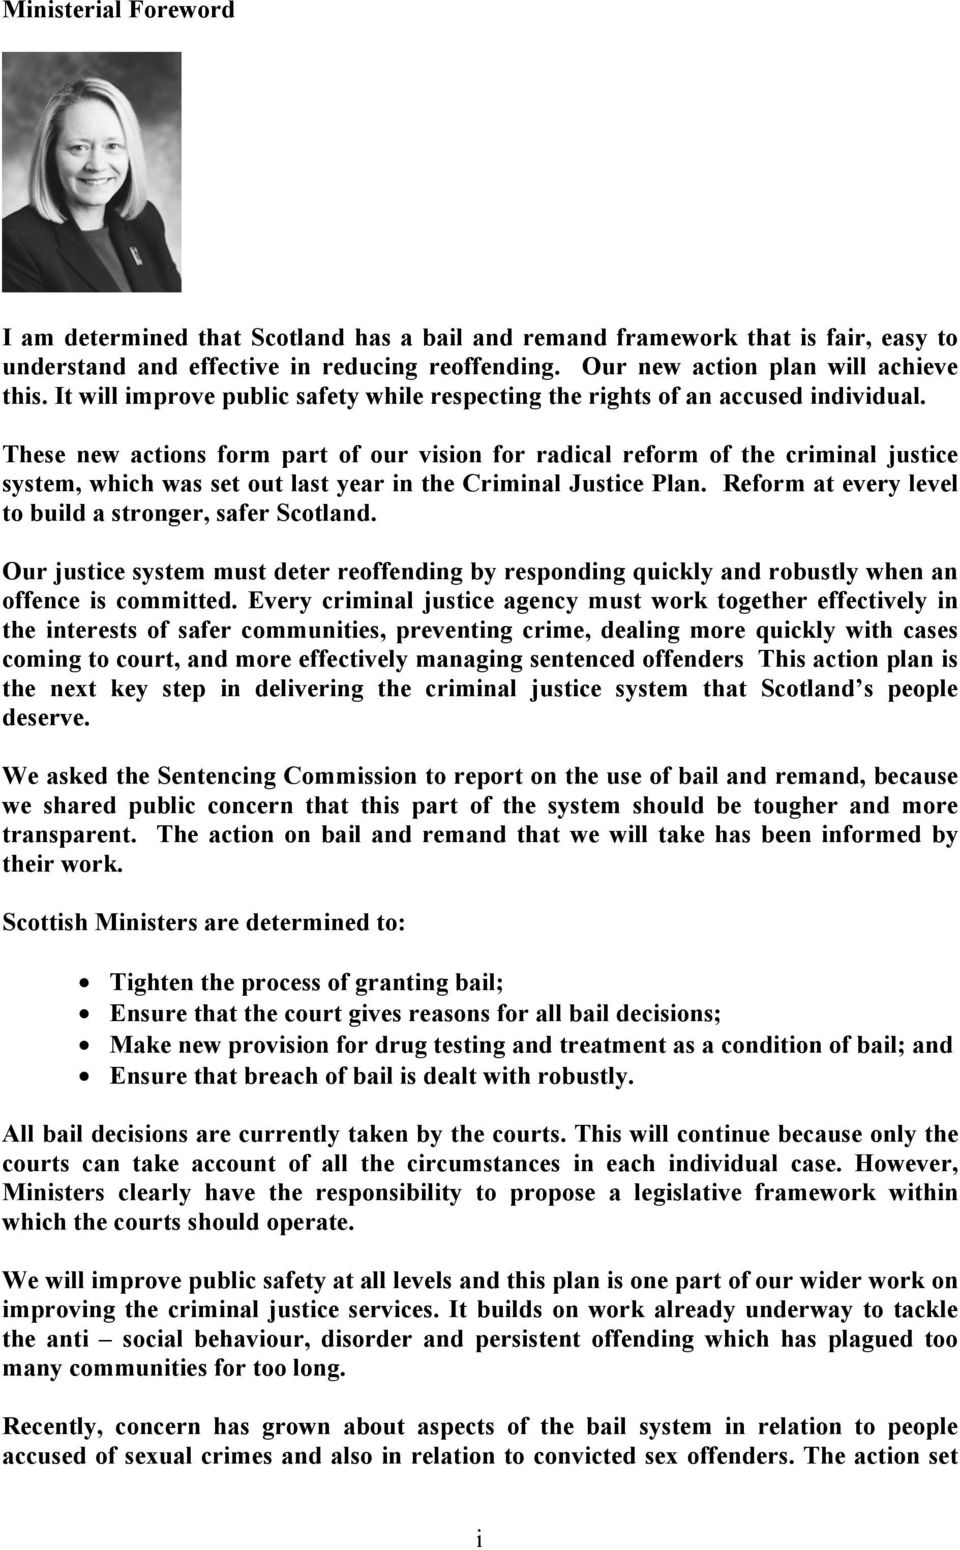 These new actions form part of our vision for radical reform of the criminal justice system, which was set out last year in the Criminal Justice Plan.